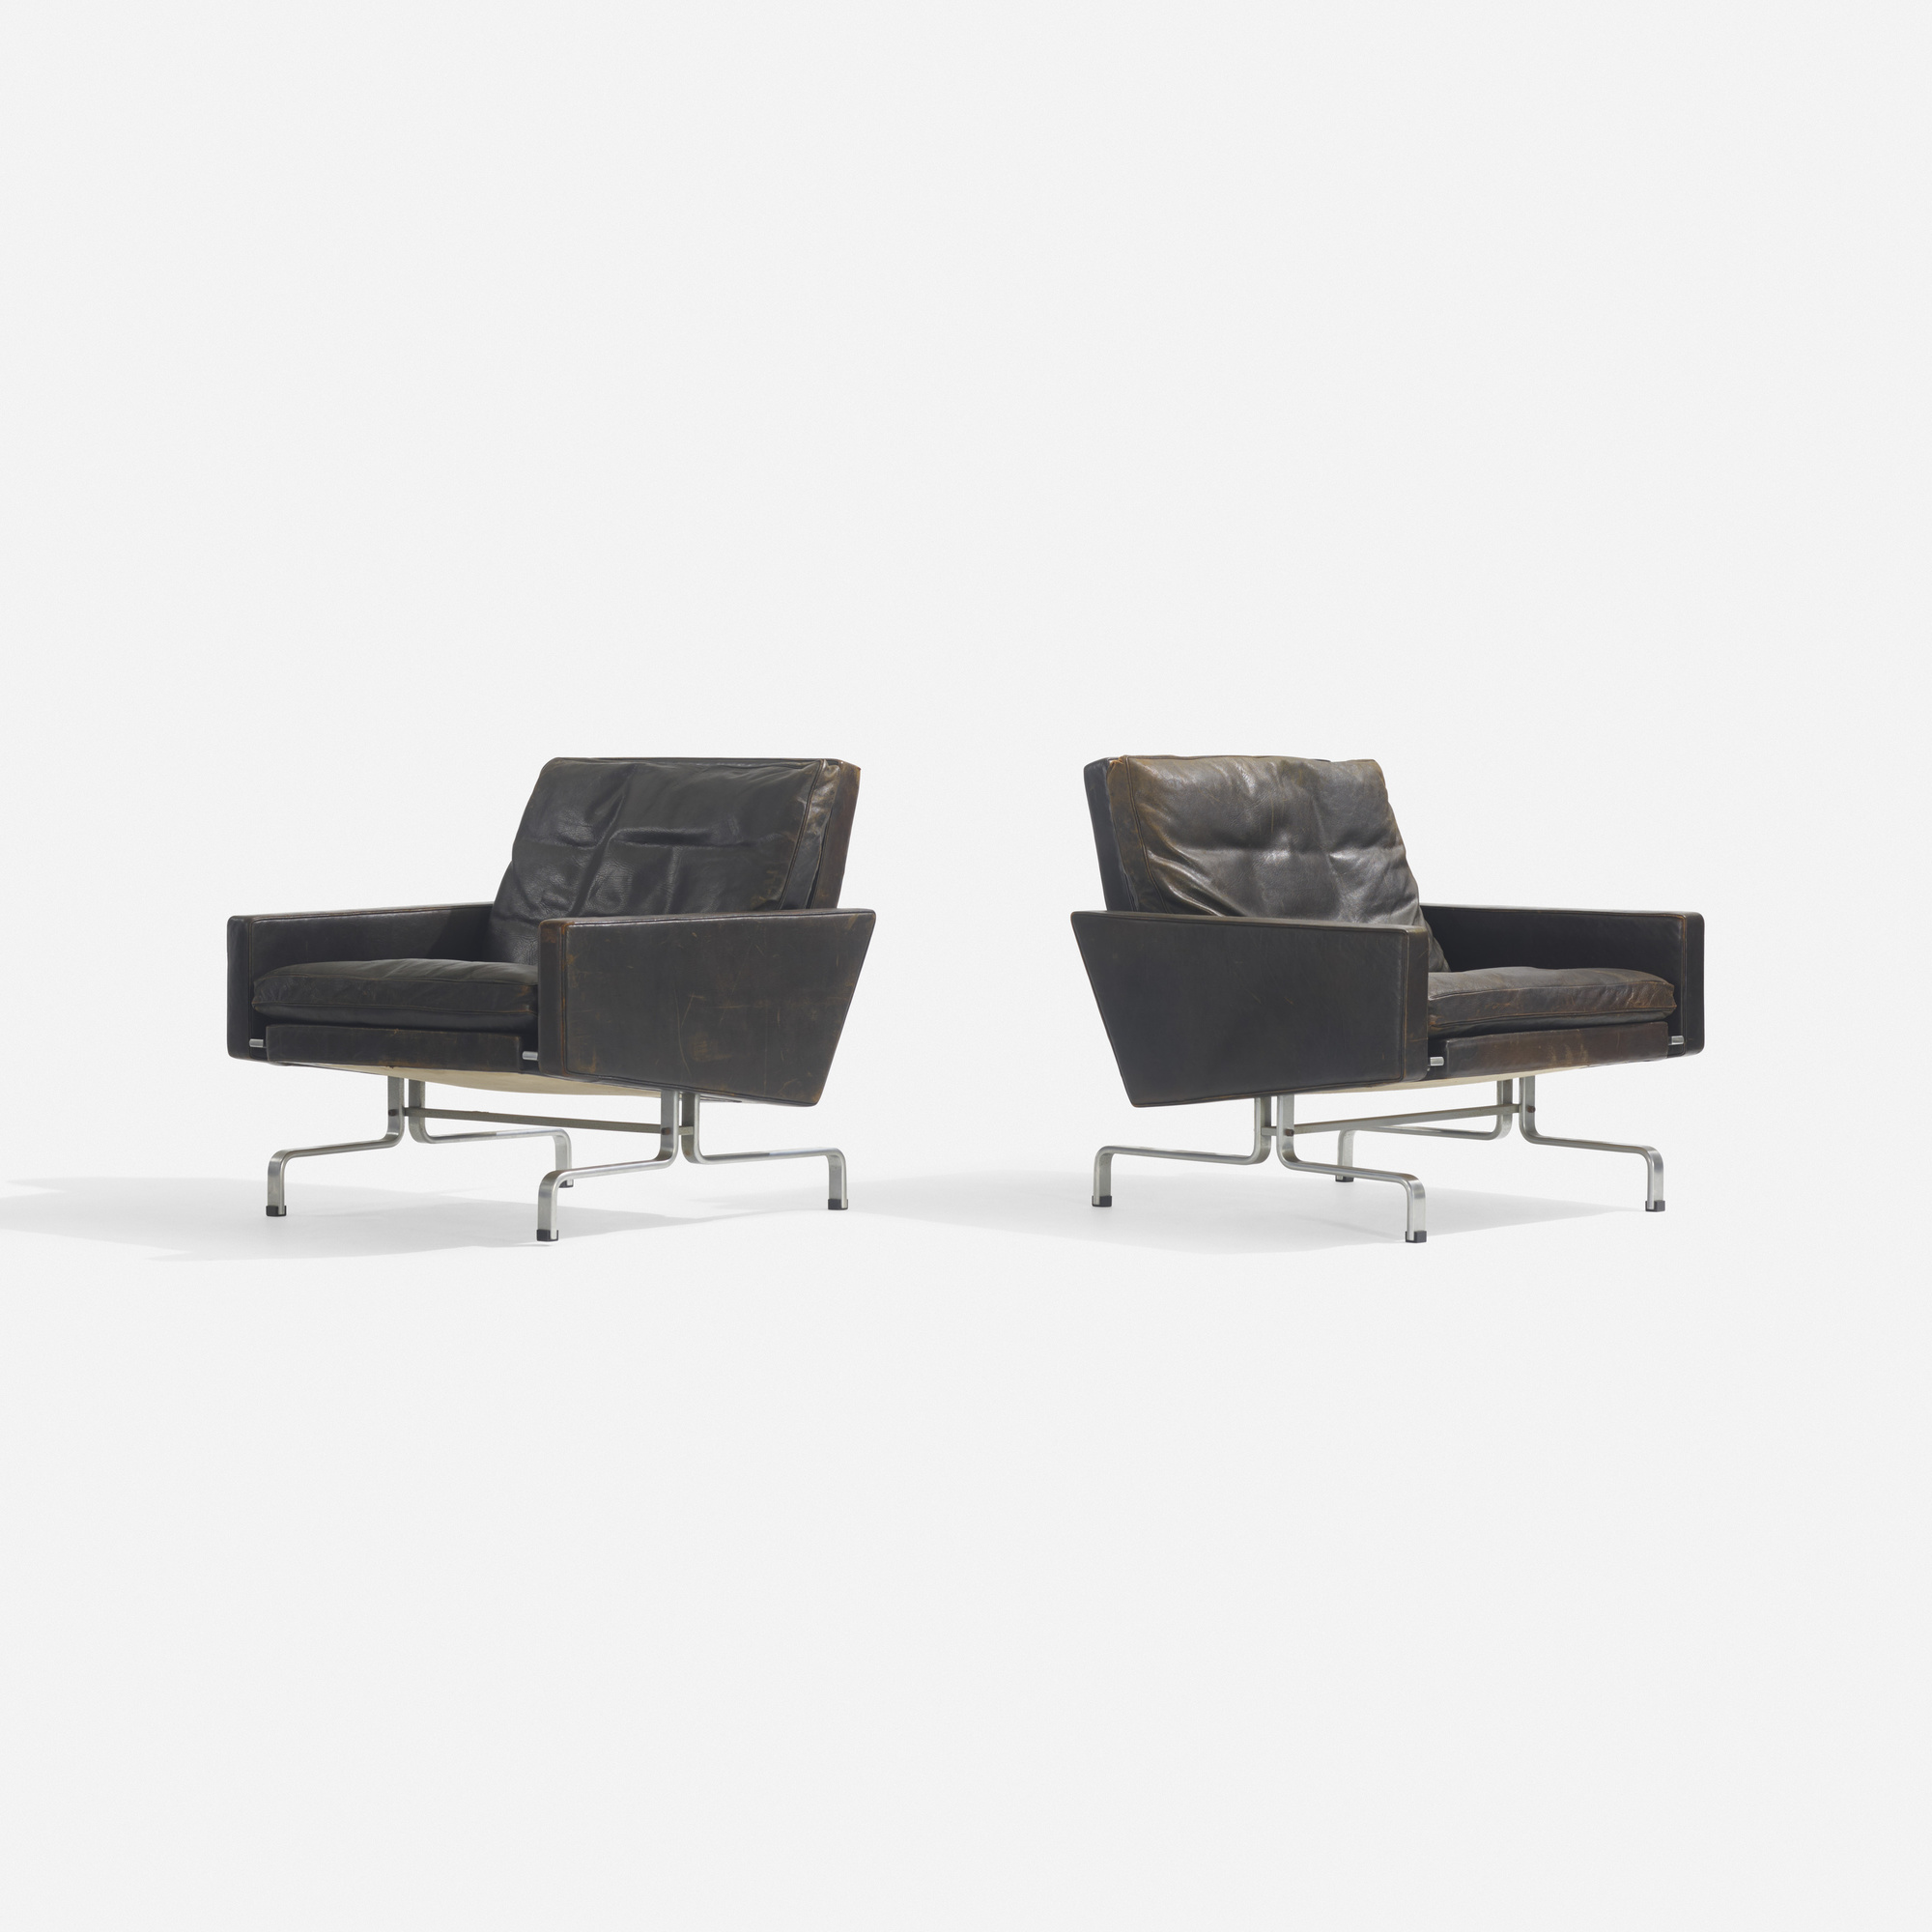 214: Poul Kjaerholm / PK 31/1 lounge chairs, pair (1 of 2)